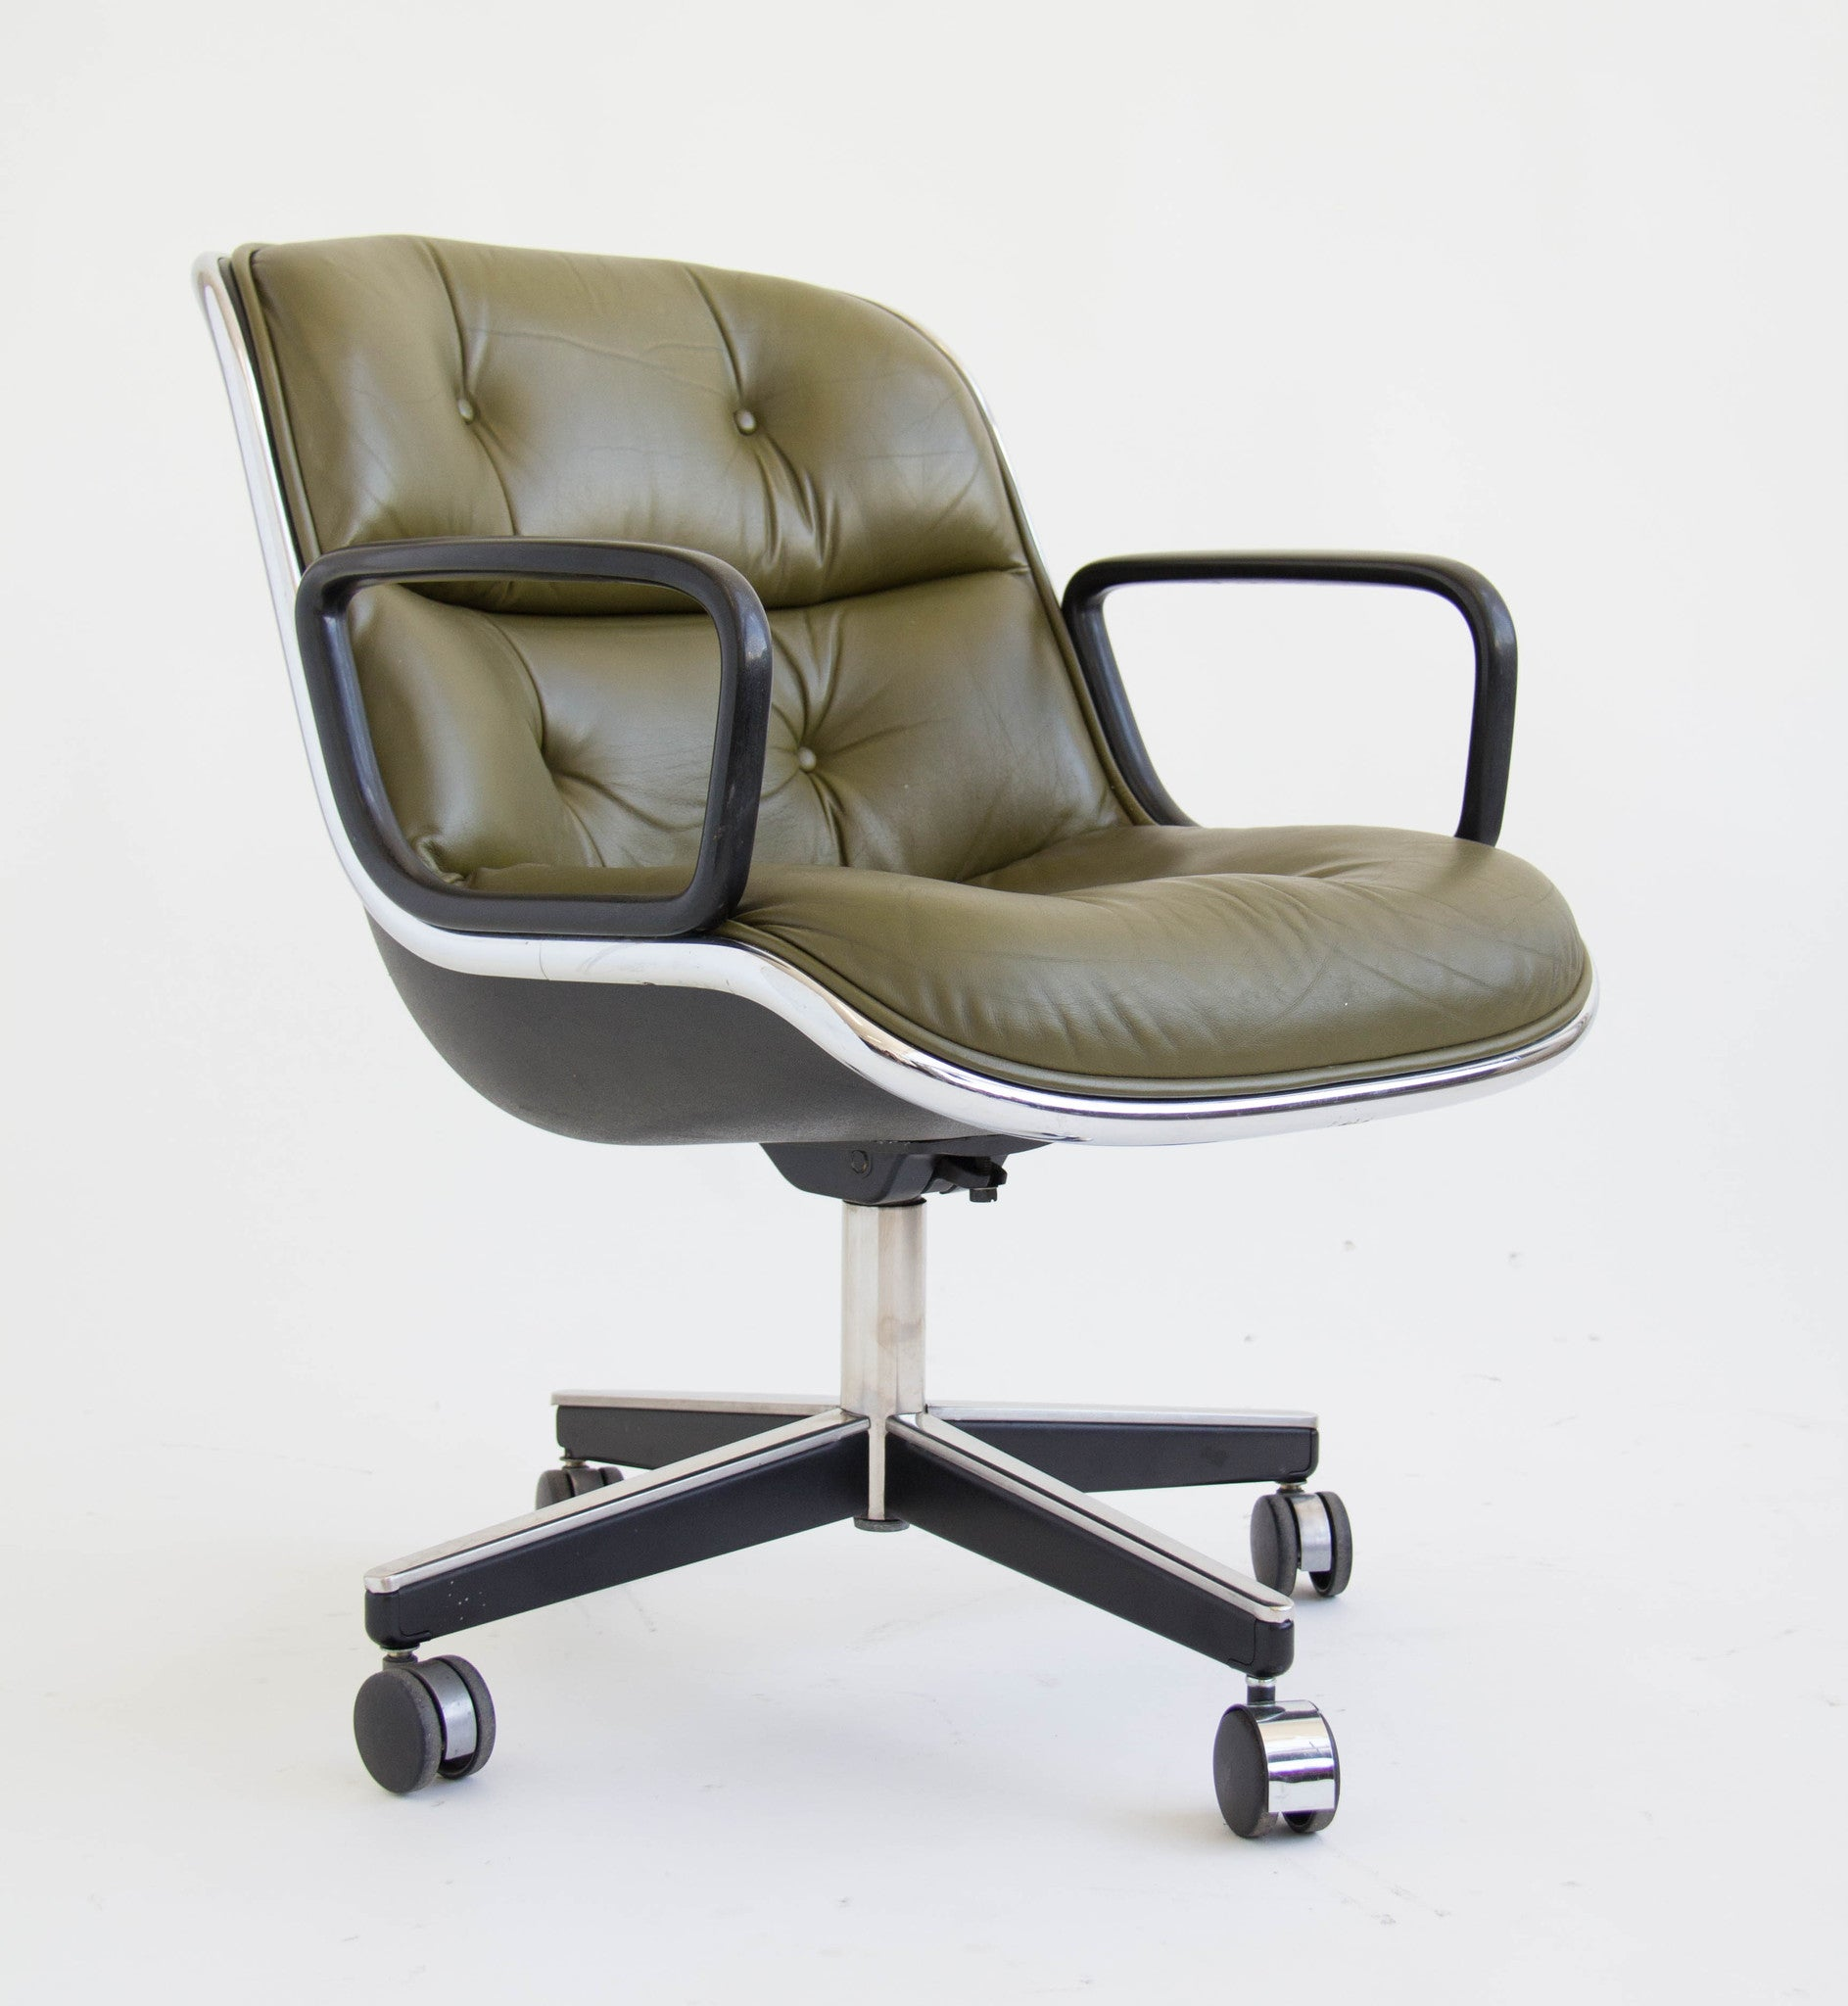 Green Leather fice Chair by Charles Pollock for Knoll – Den M¸bler